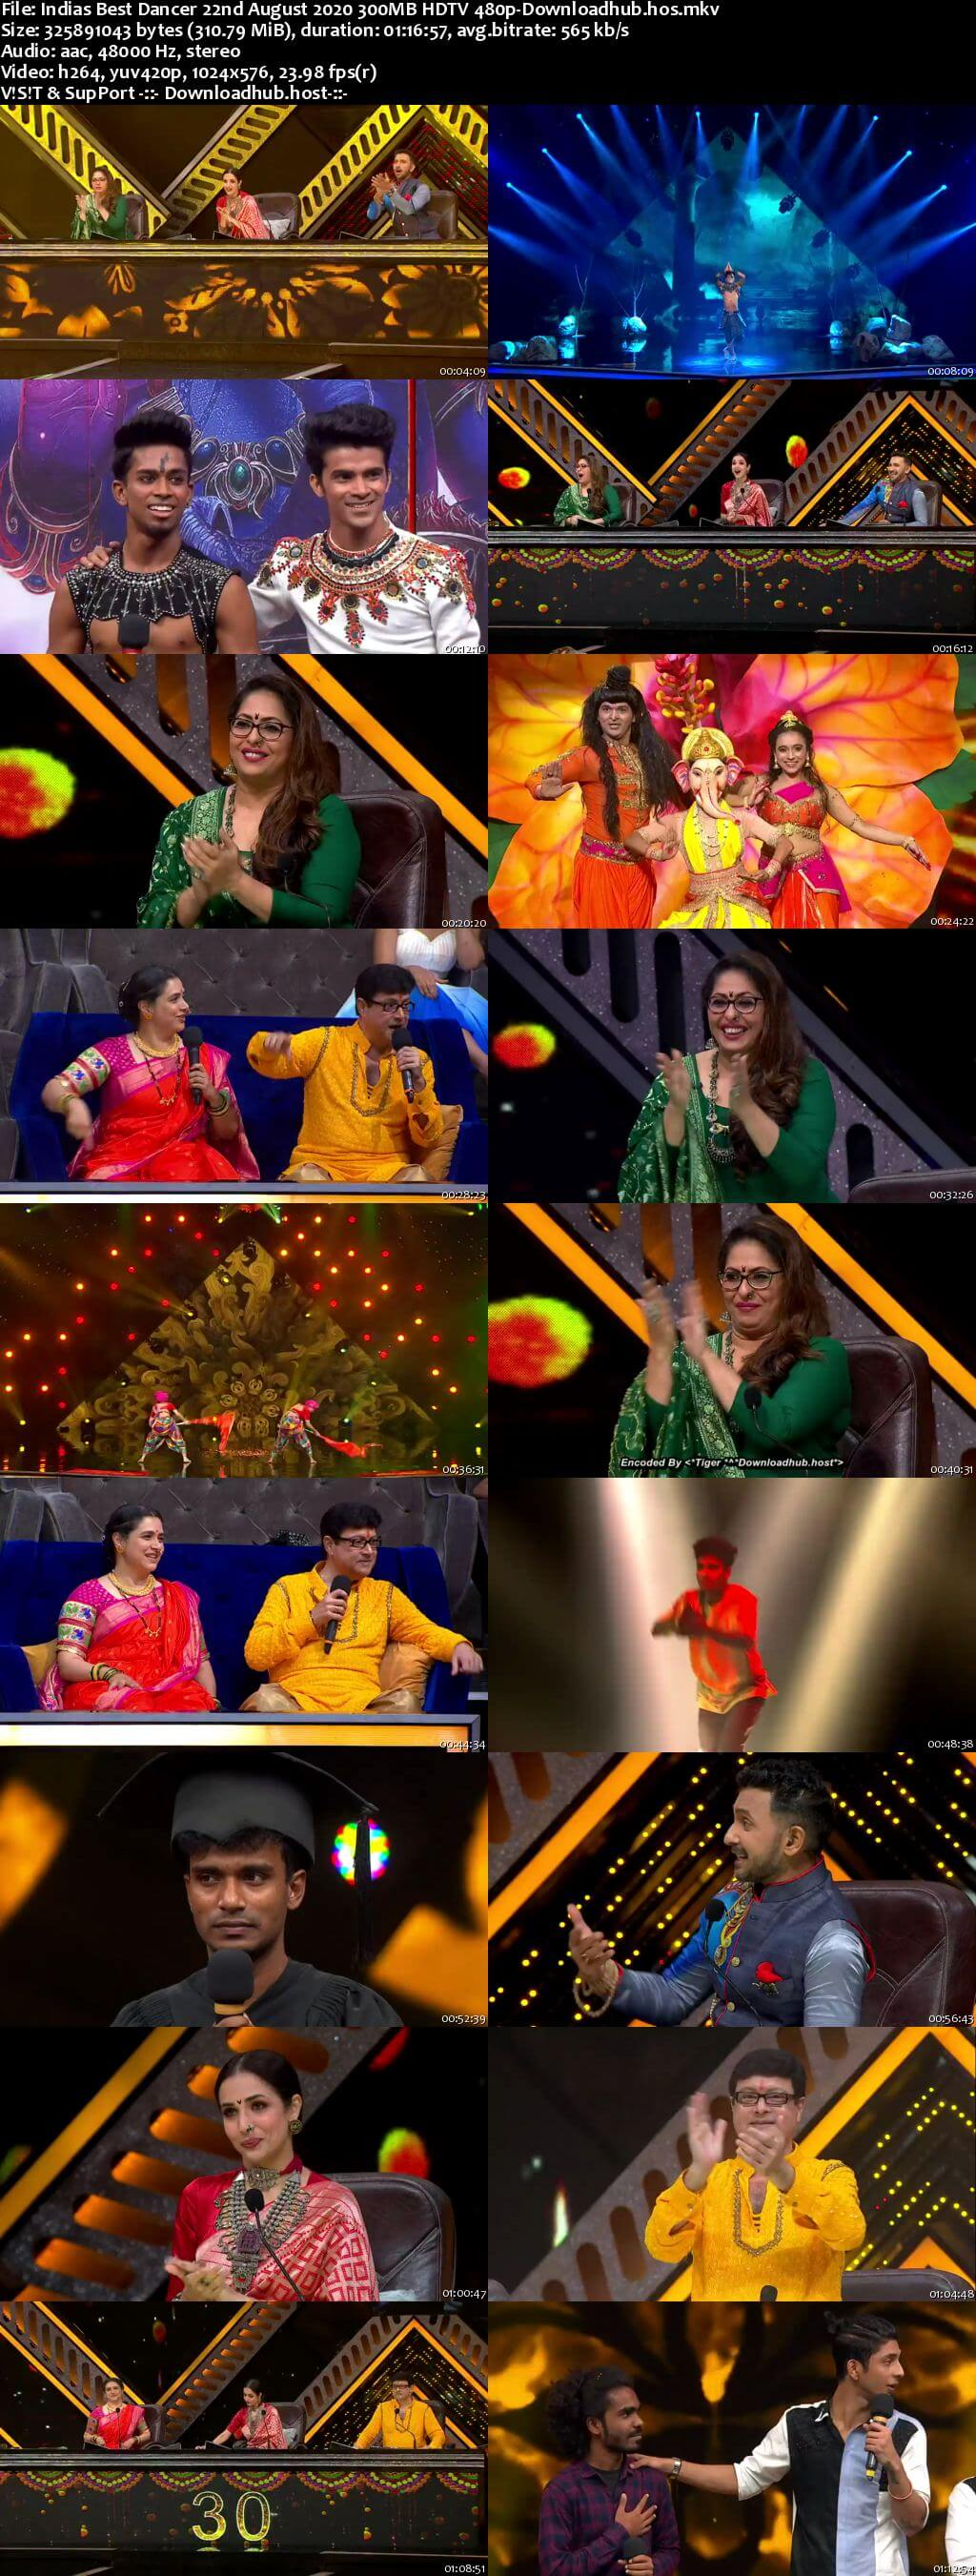 Indias Best Dancer 22 August 2020 Episode 21 HDTV 480p